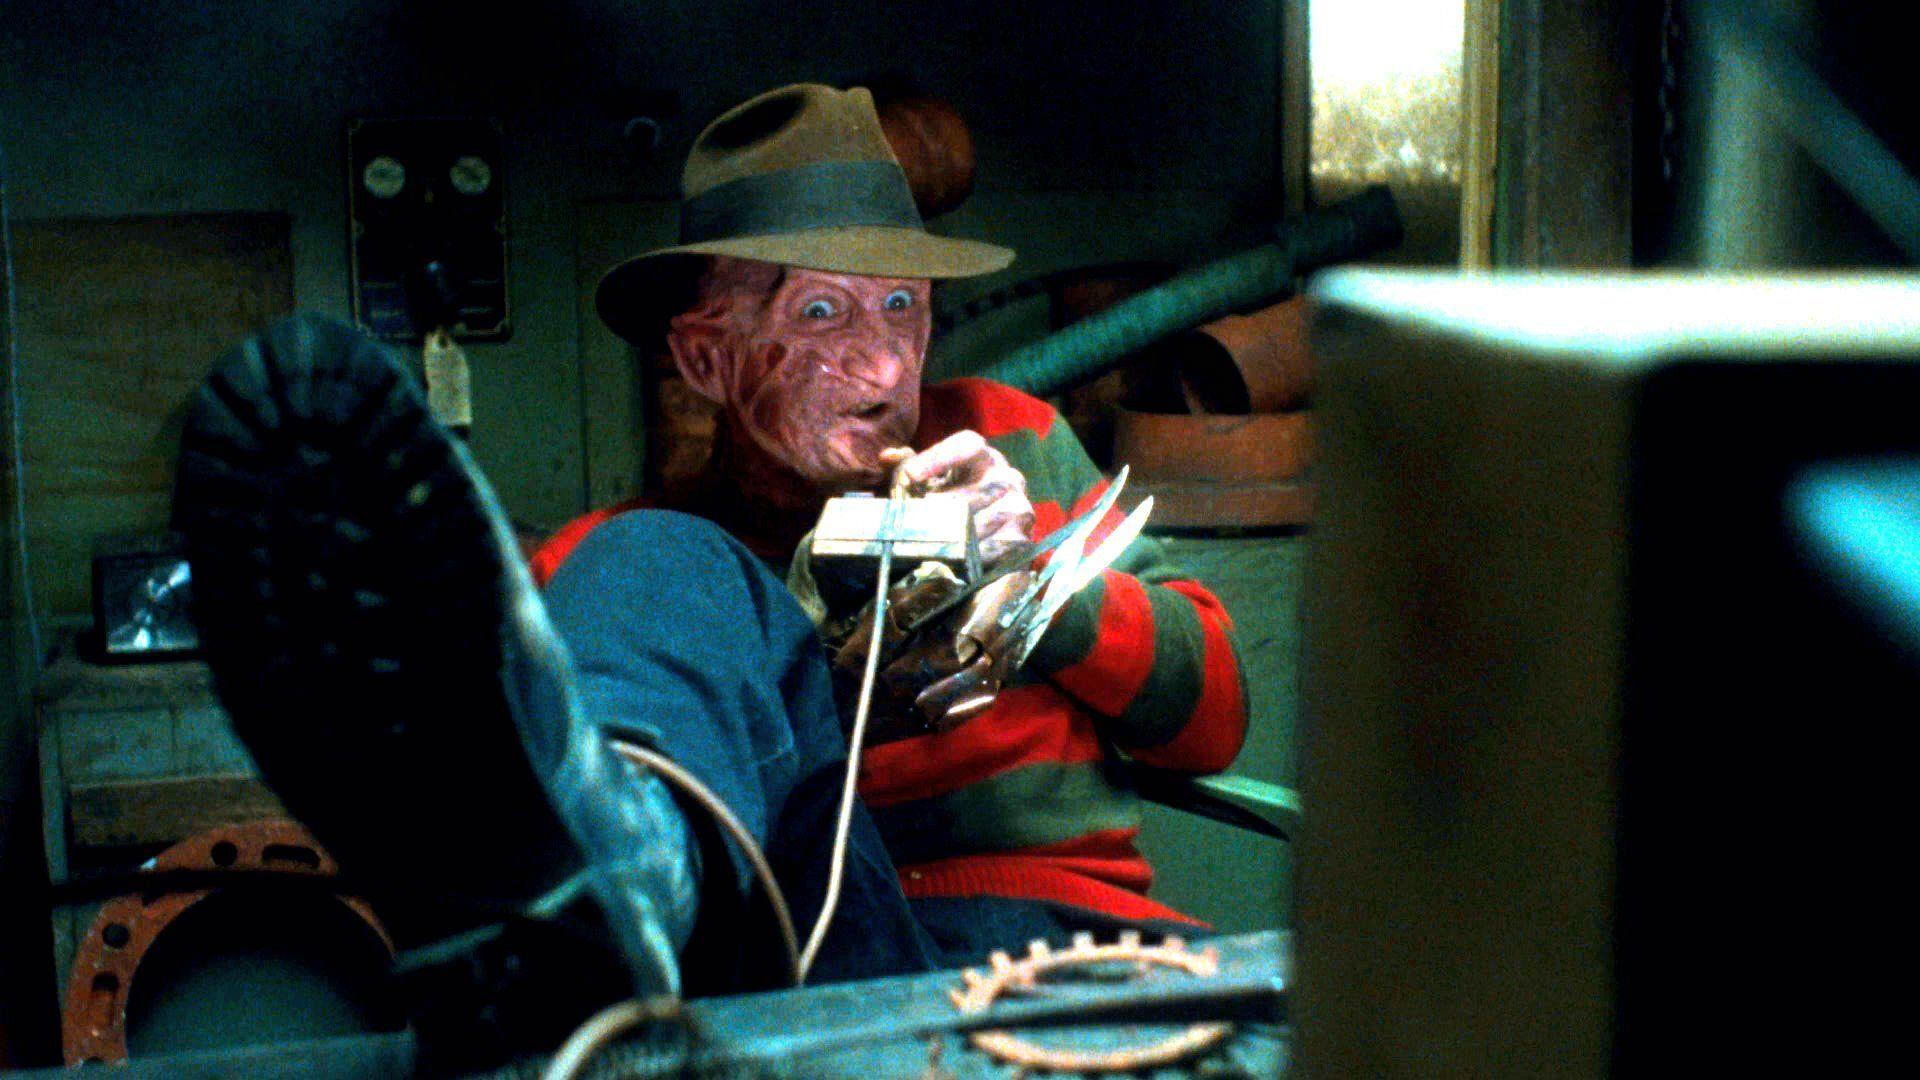 A NIGHTMARE ON ELM STREET dark horror thriller hd wallpapers